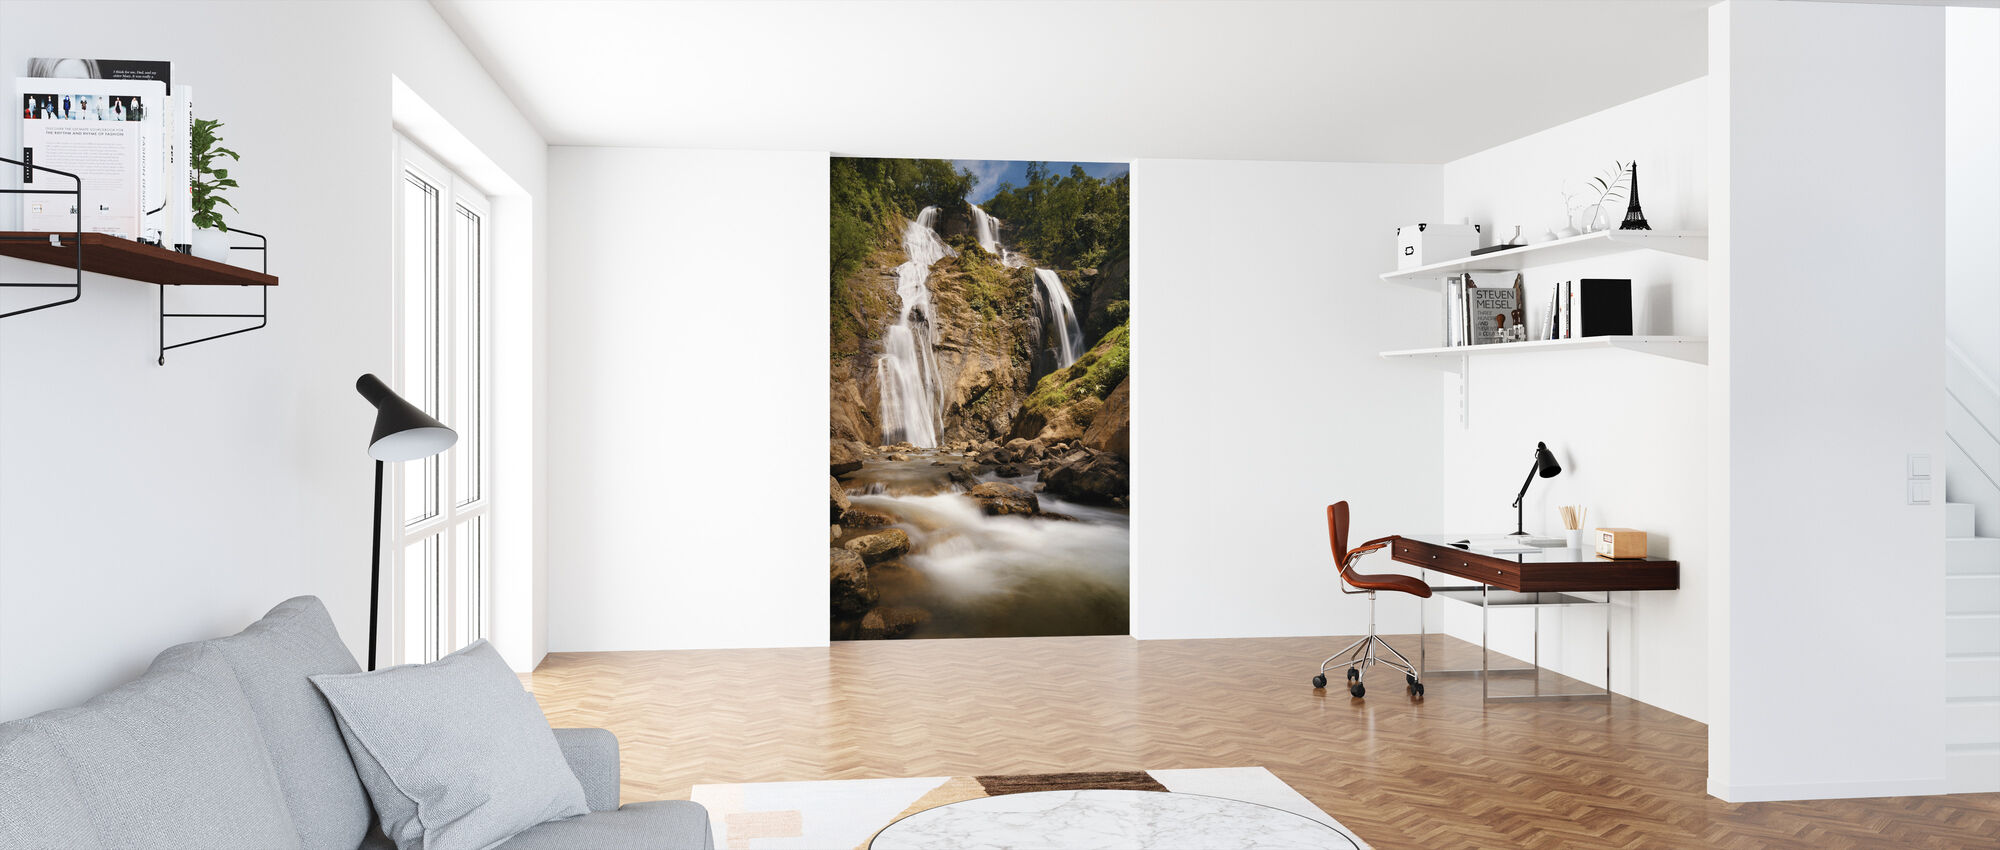 Bani Falls - Wallpaper - Office